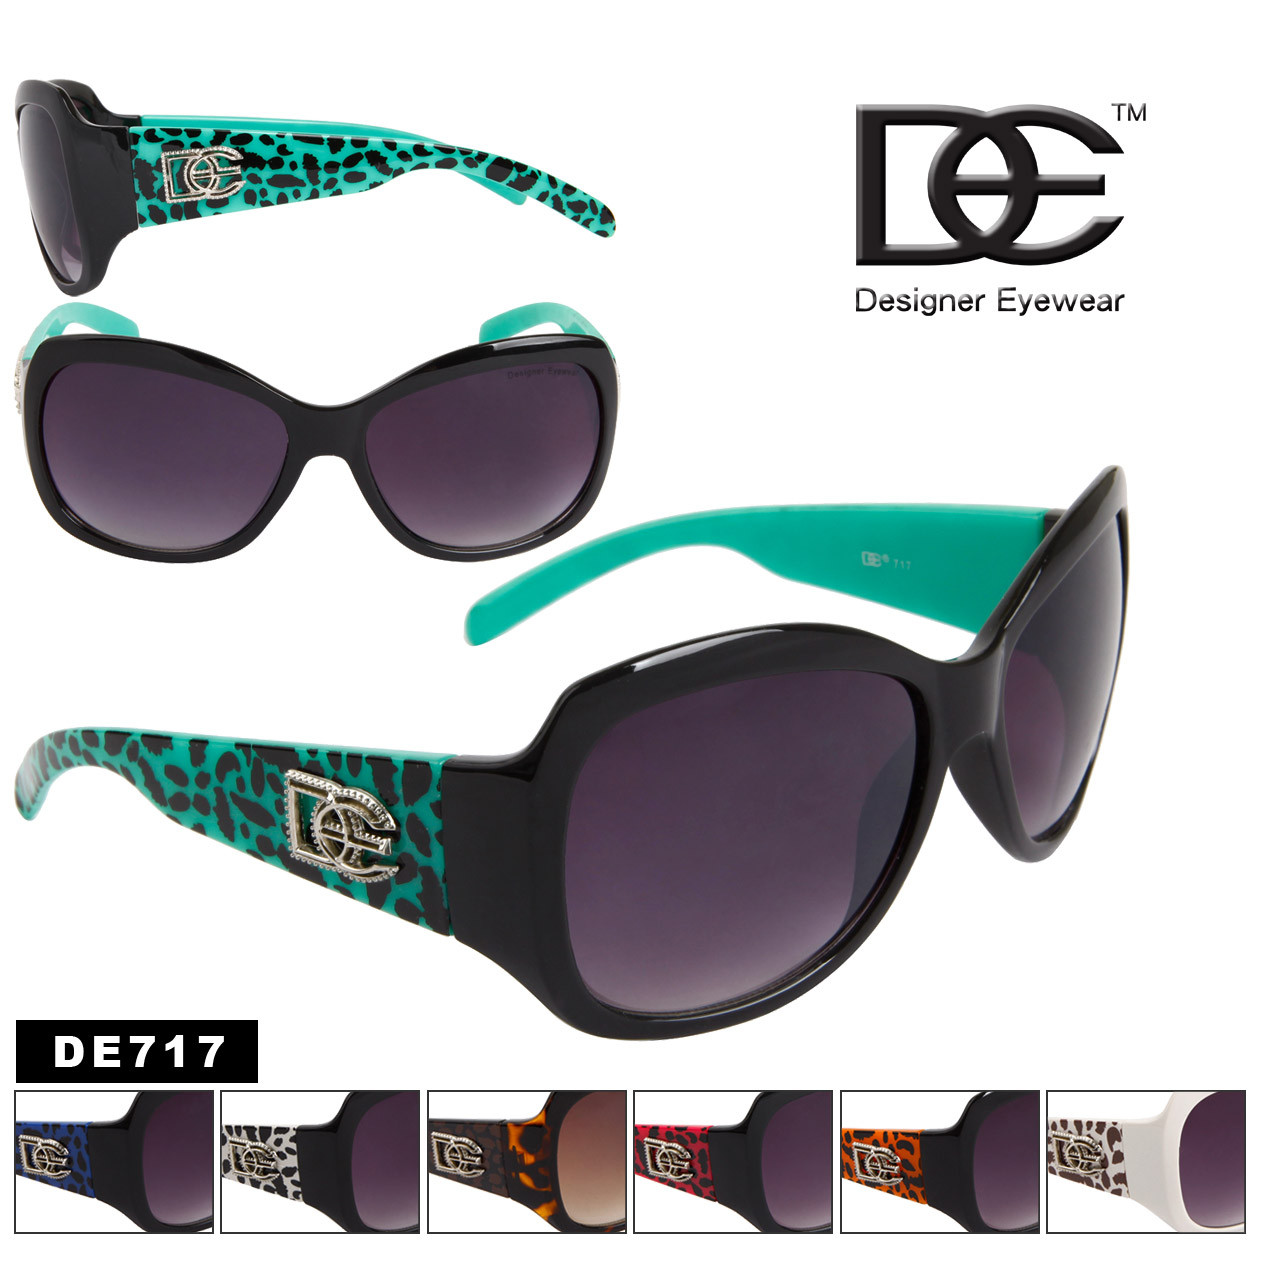 Designer Eyewear™ Fashion Sunglasses by the Dozen - Style # DE717